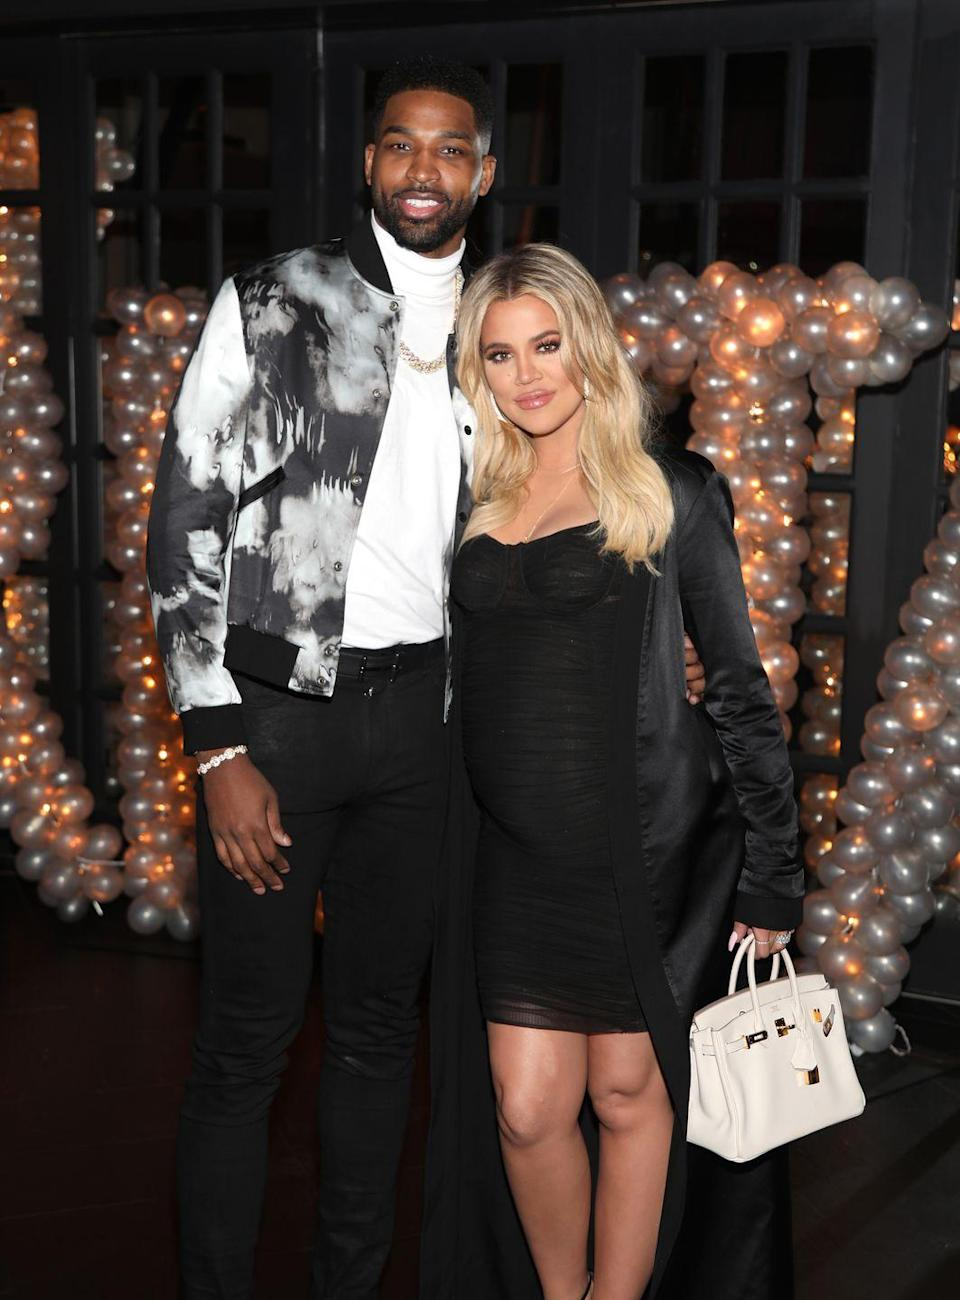 "<p>Most people are <em>still</em> confused by the reality star's relationship with her ex (or former ex?!), Tristan Thompson. Whenever there's a sign that the pair may be rekindling their romance, <a href=""https://www.cosmopolitan.com/entertainment/celebs/a31675716/khloe-kardashian-responds-back-together-tristan-thompson-instagram/"" rel=""nofollow noopener"" target=""_blank"" data-ylk=""slk:fans jump on the news"" class=""link rapid-noclick-resp"">fans jump on the news</a>. Some are excited for the couple, but most are...not.</p>"